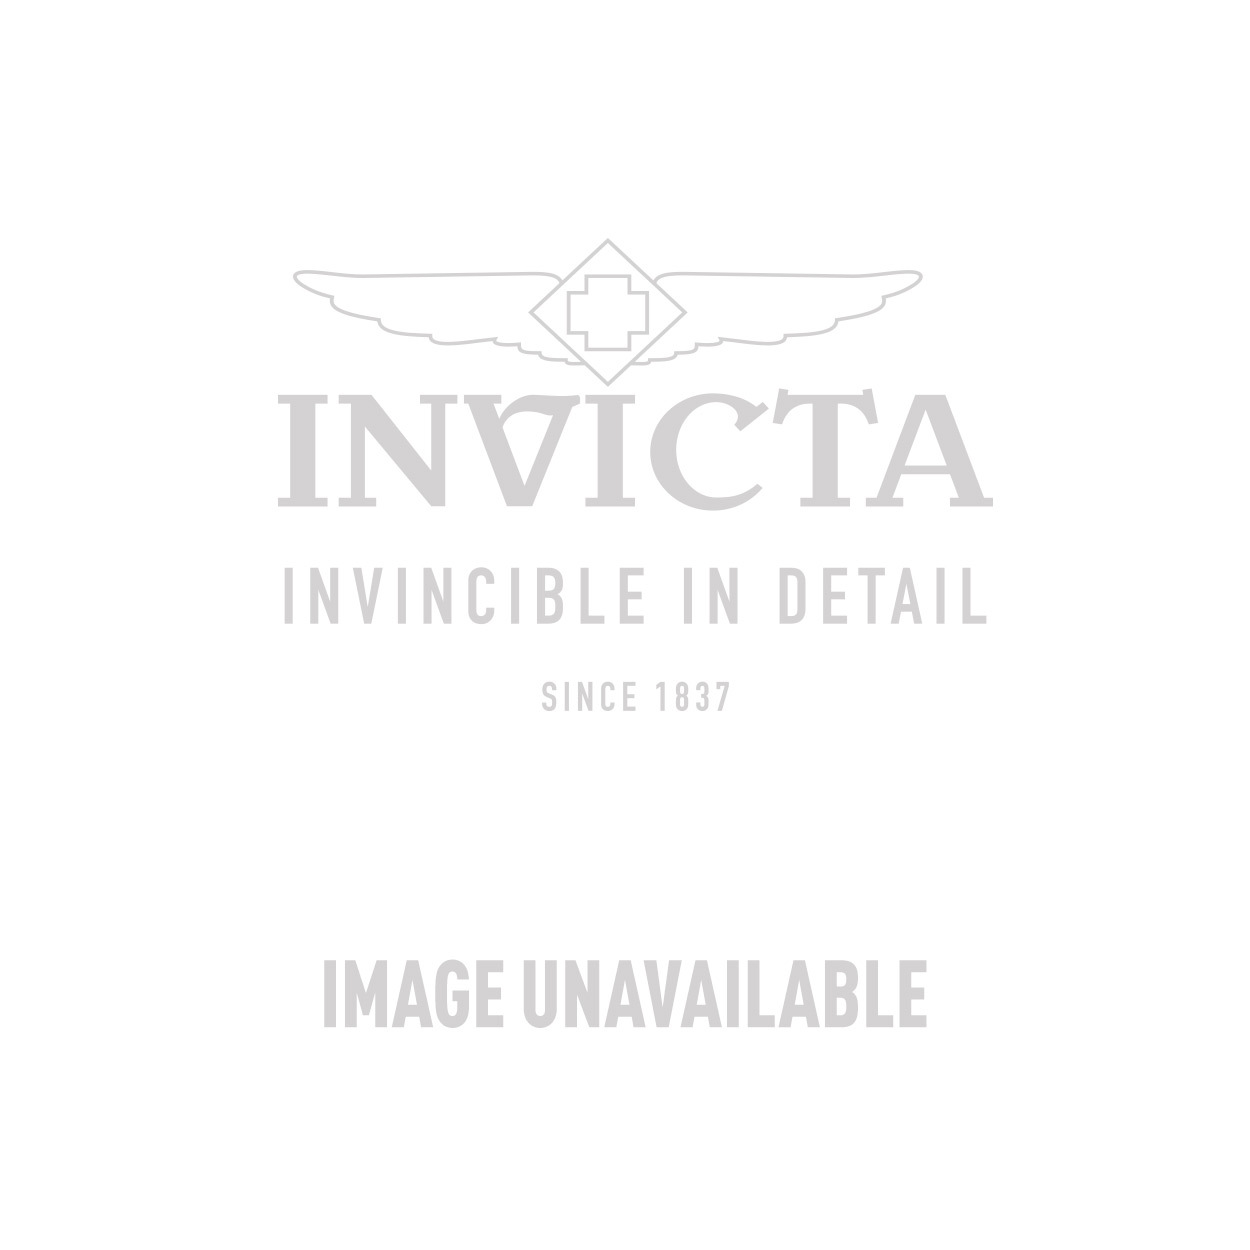 Invicta Bolt Swiss Made Quartz Watch - Black, Stainless Steel case with Steel, Black tone Stainless Steel, Polyurethane band - Model 14071